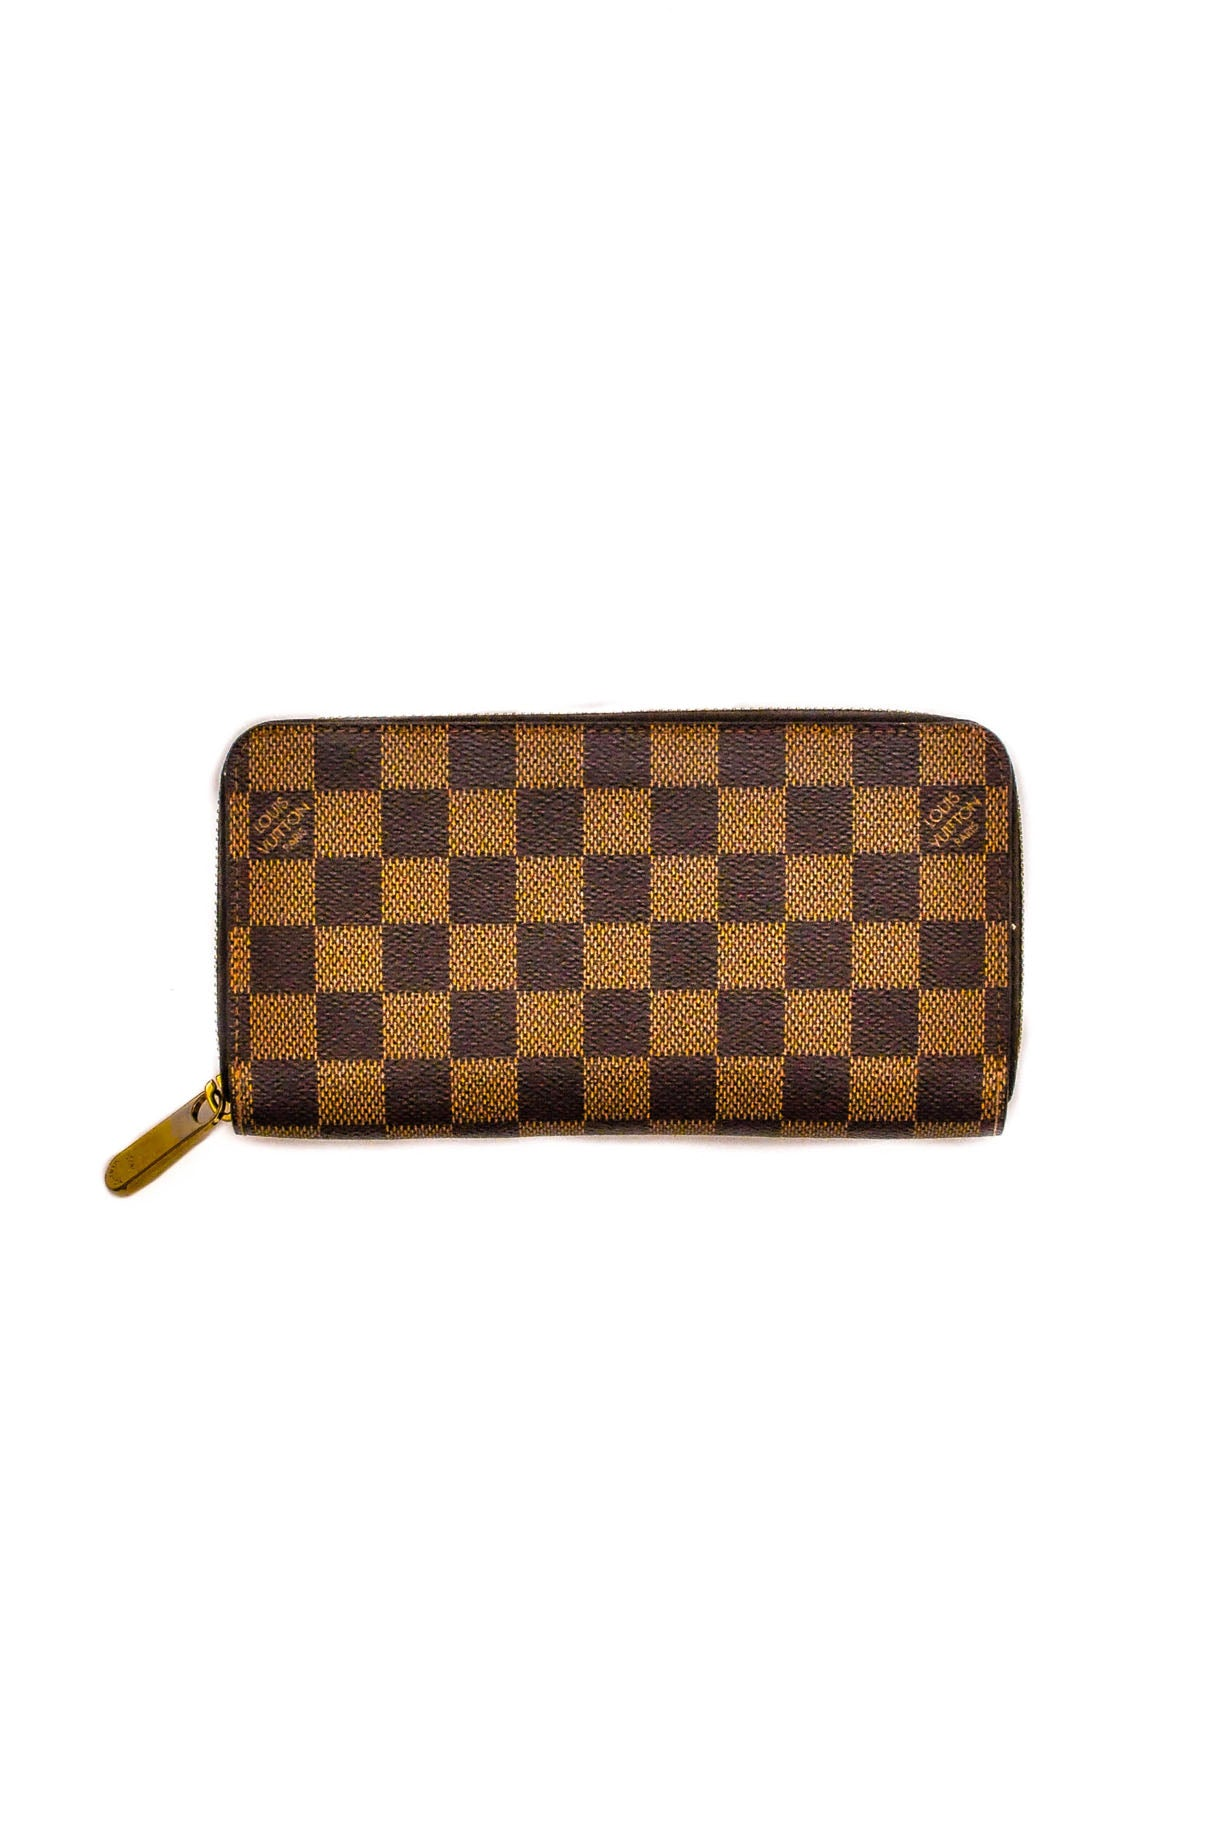 Vintage Louis Vuitton Zippy Wallet from Sweet and Spark